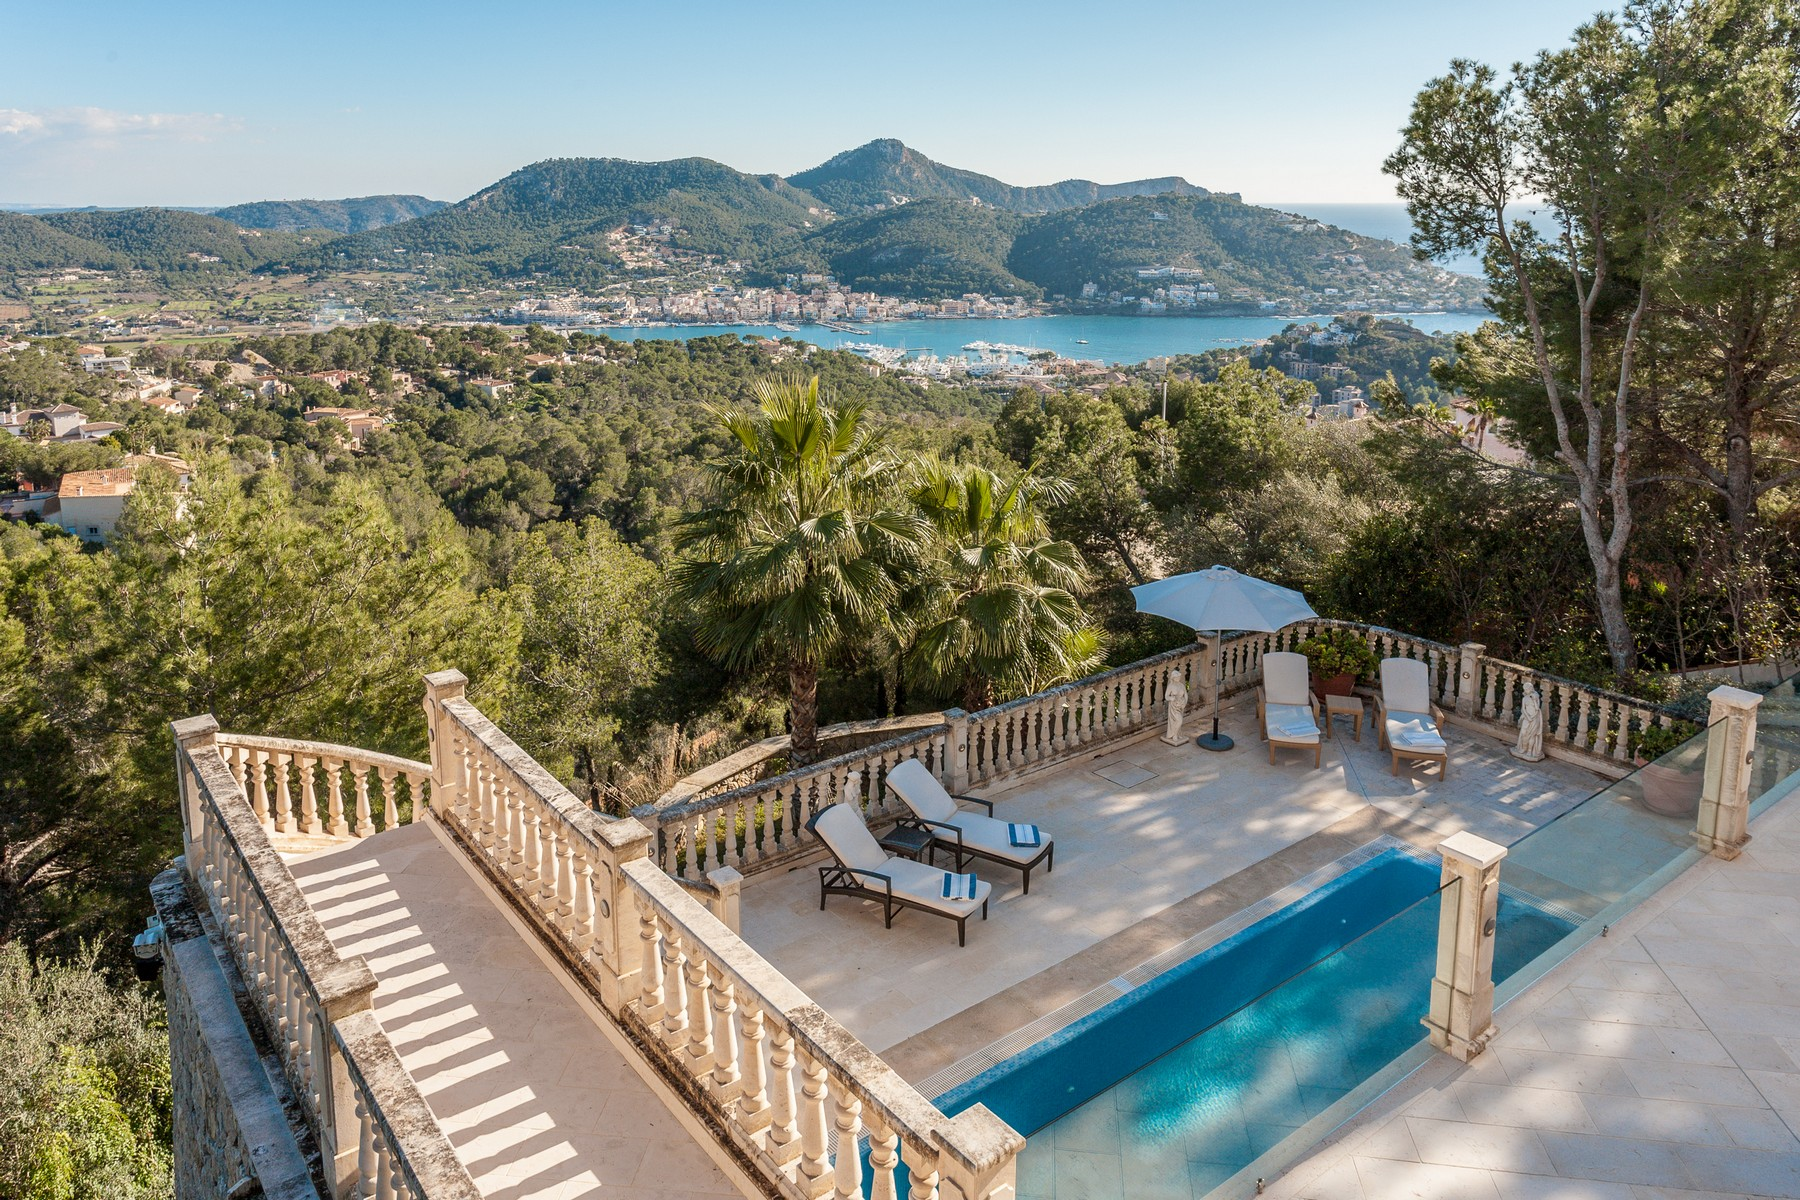 Casa Unifamiliar por un Venta en Villa in Mon Port with unbeatable views Port Andratx, Mallorca 07157 España